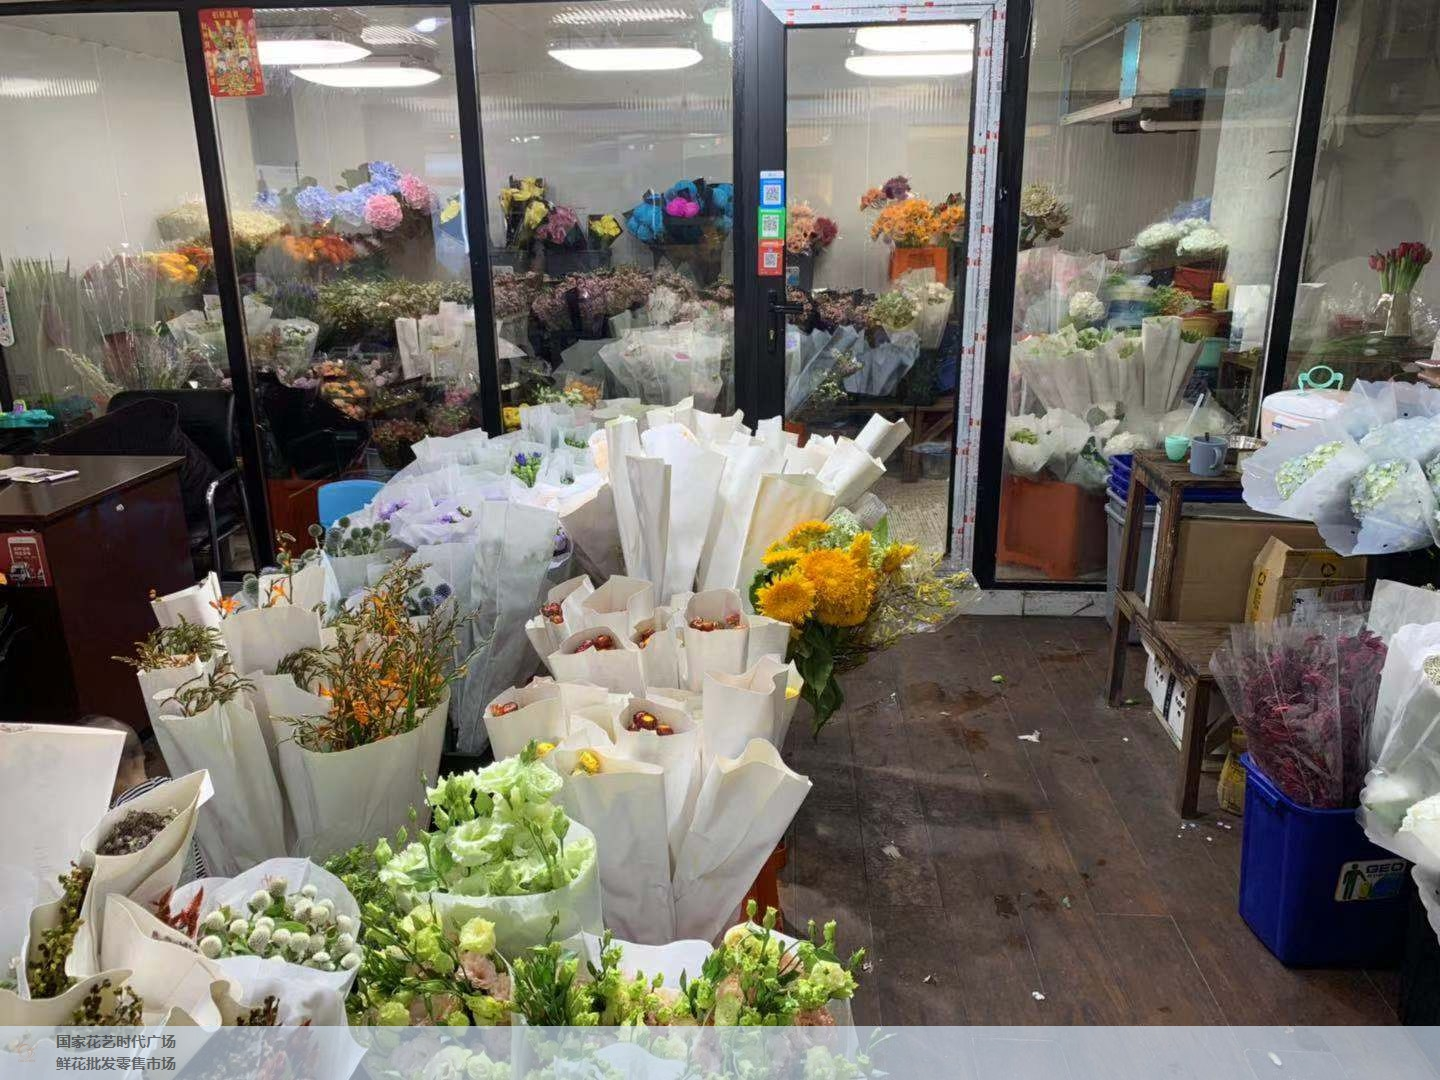 Changning District's high-quality wholesale flowers with excellent cost performance